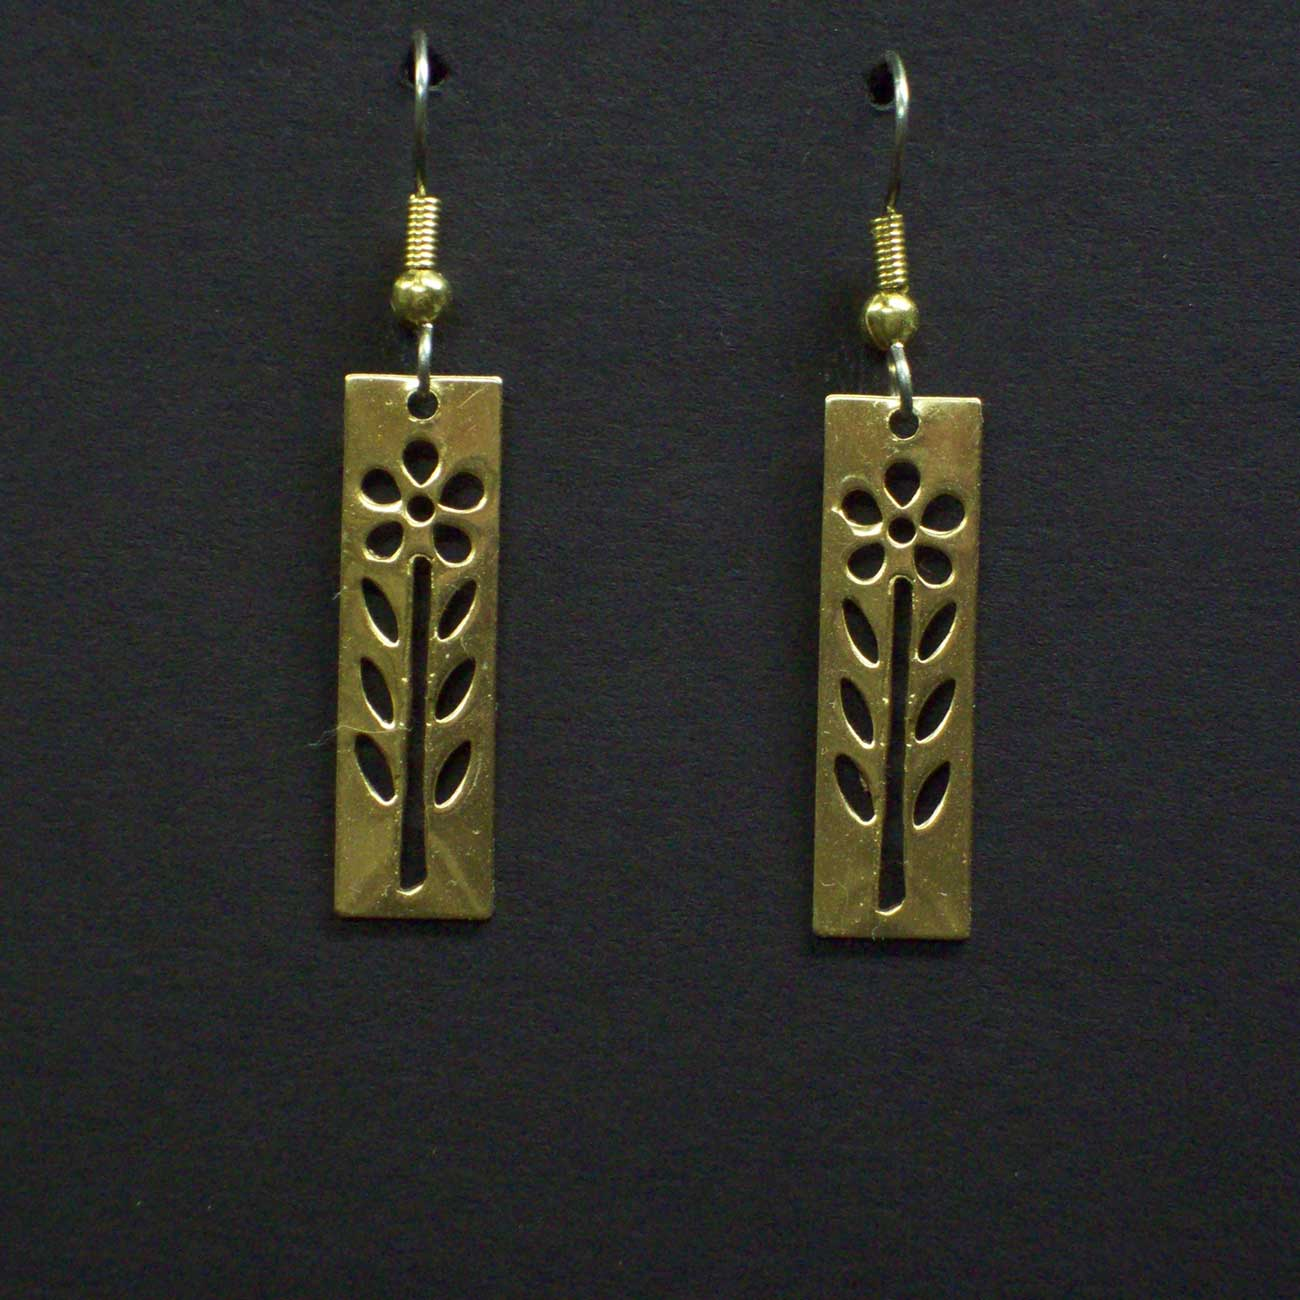 Small Cut Out Flower Rectangular Earrings